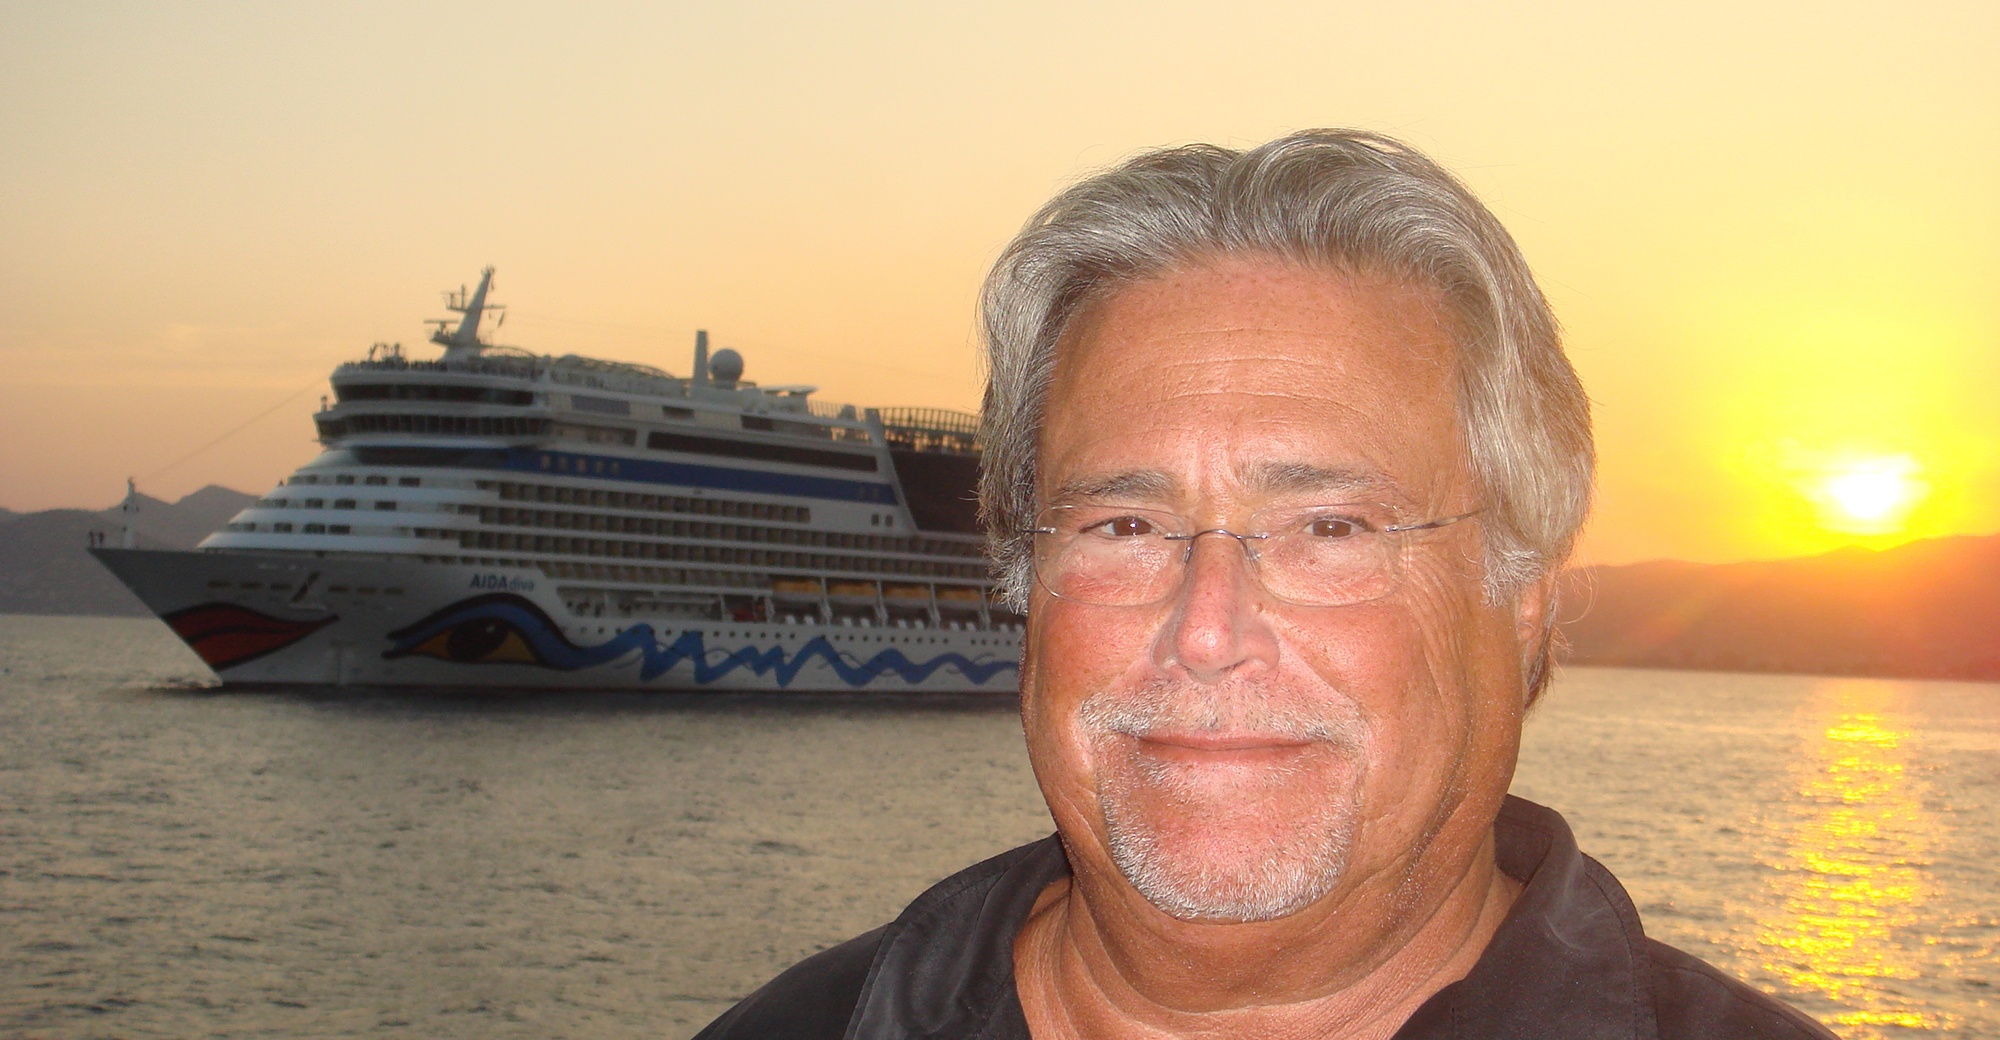 Micky Arison Carnival cruise line